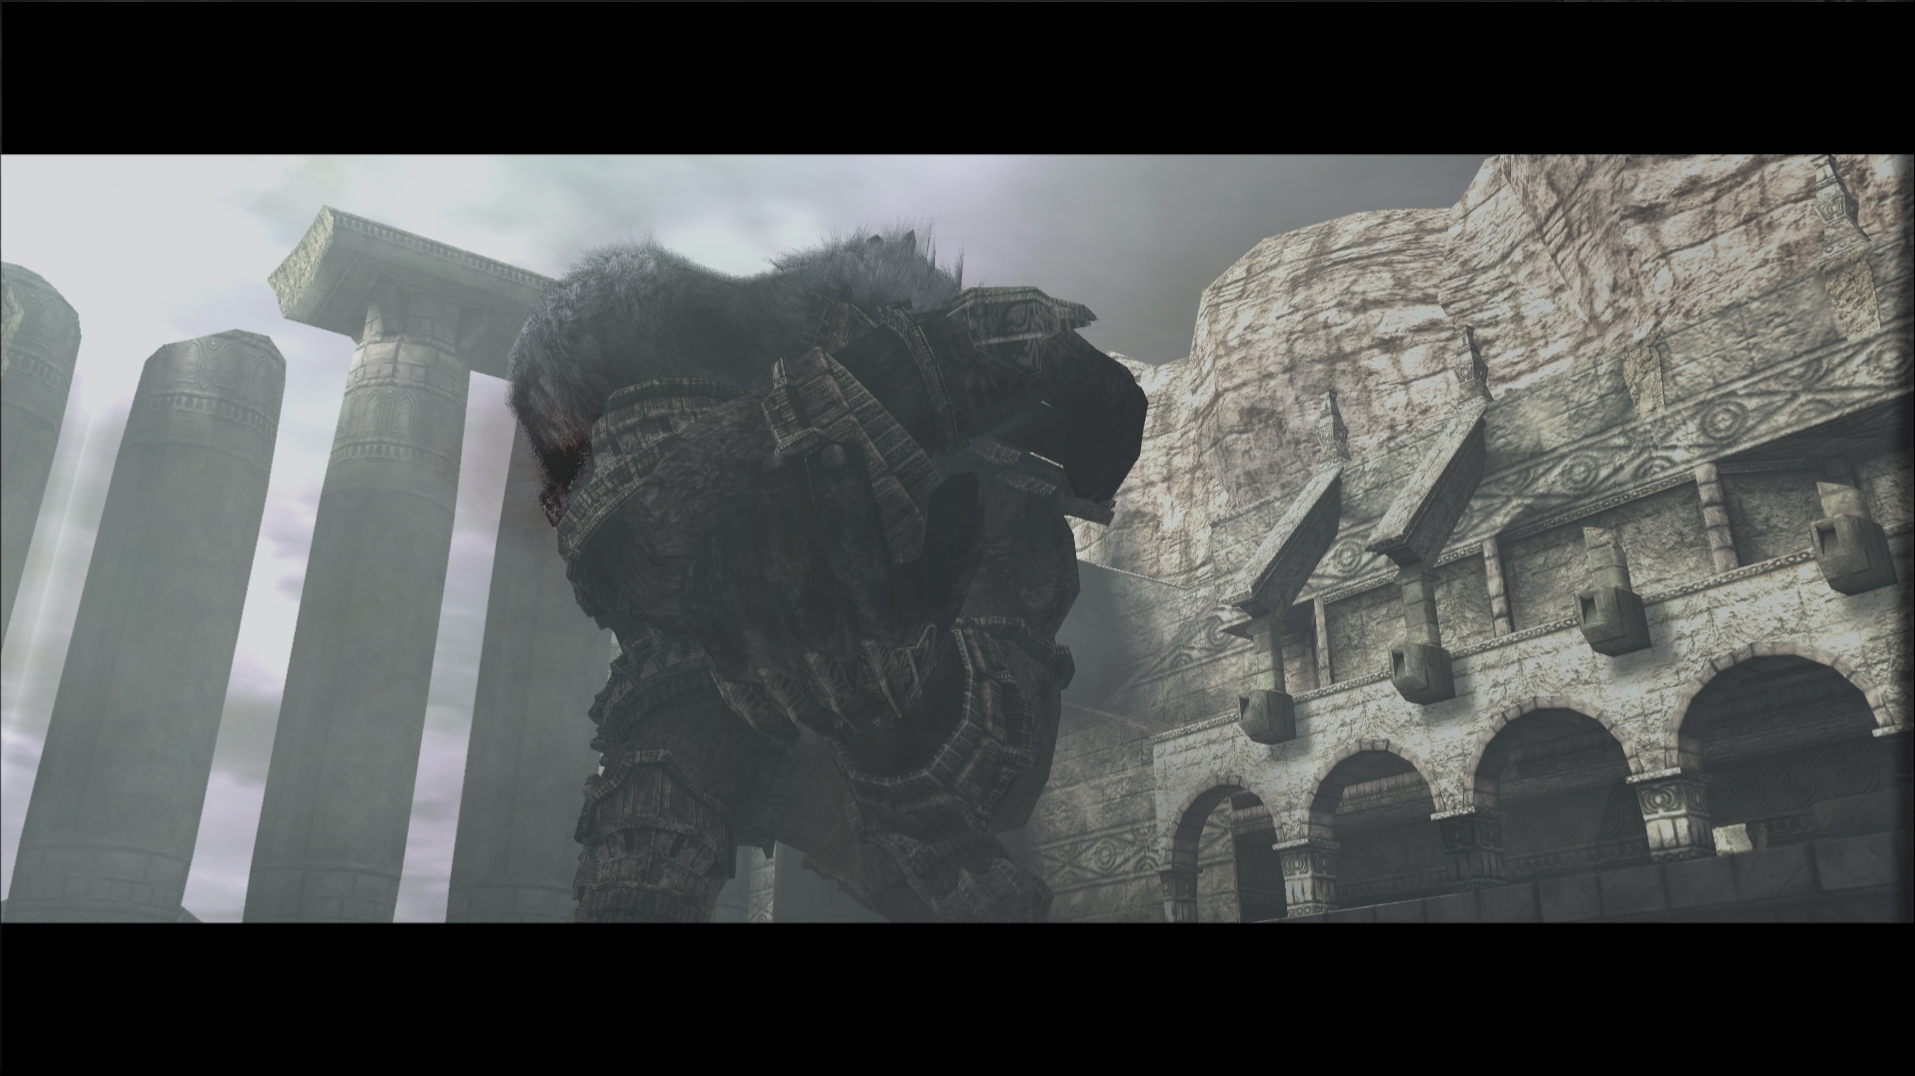 gsdx_20161124231955.jpg - Shadow of the Colossus